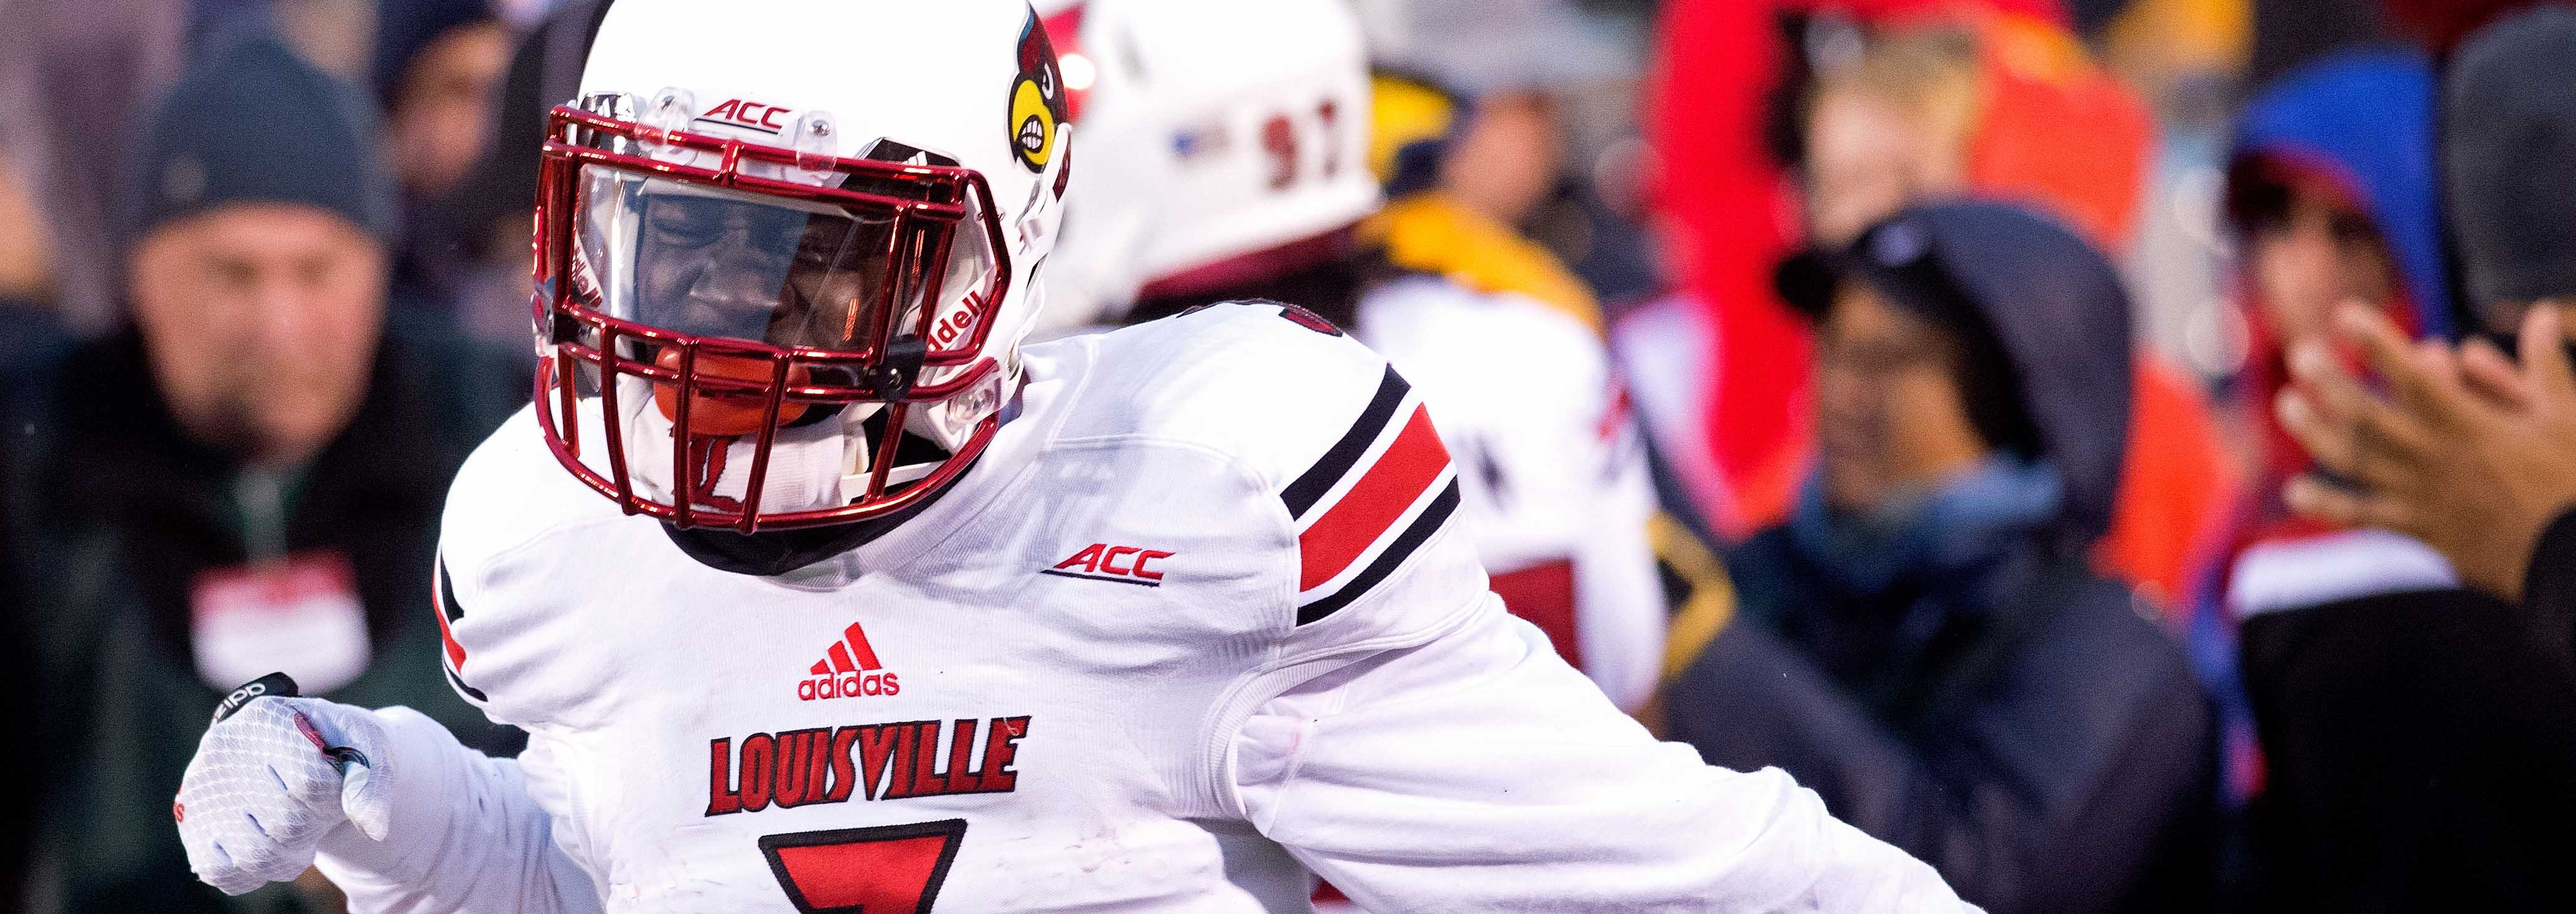 Charles Gaines Louisville vs. Notre Dame Photo by Adam Creech 11-22-2014 Fitted